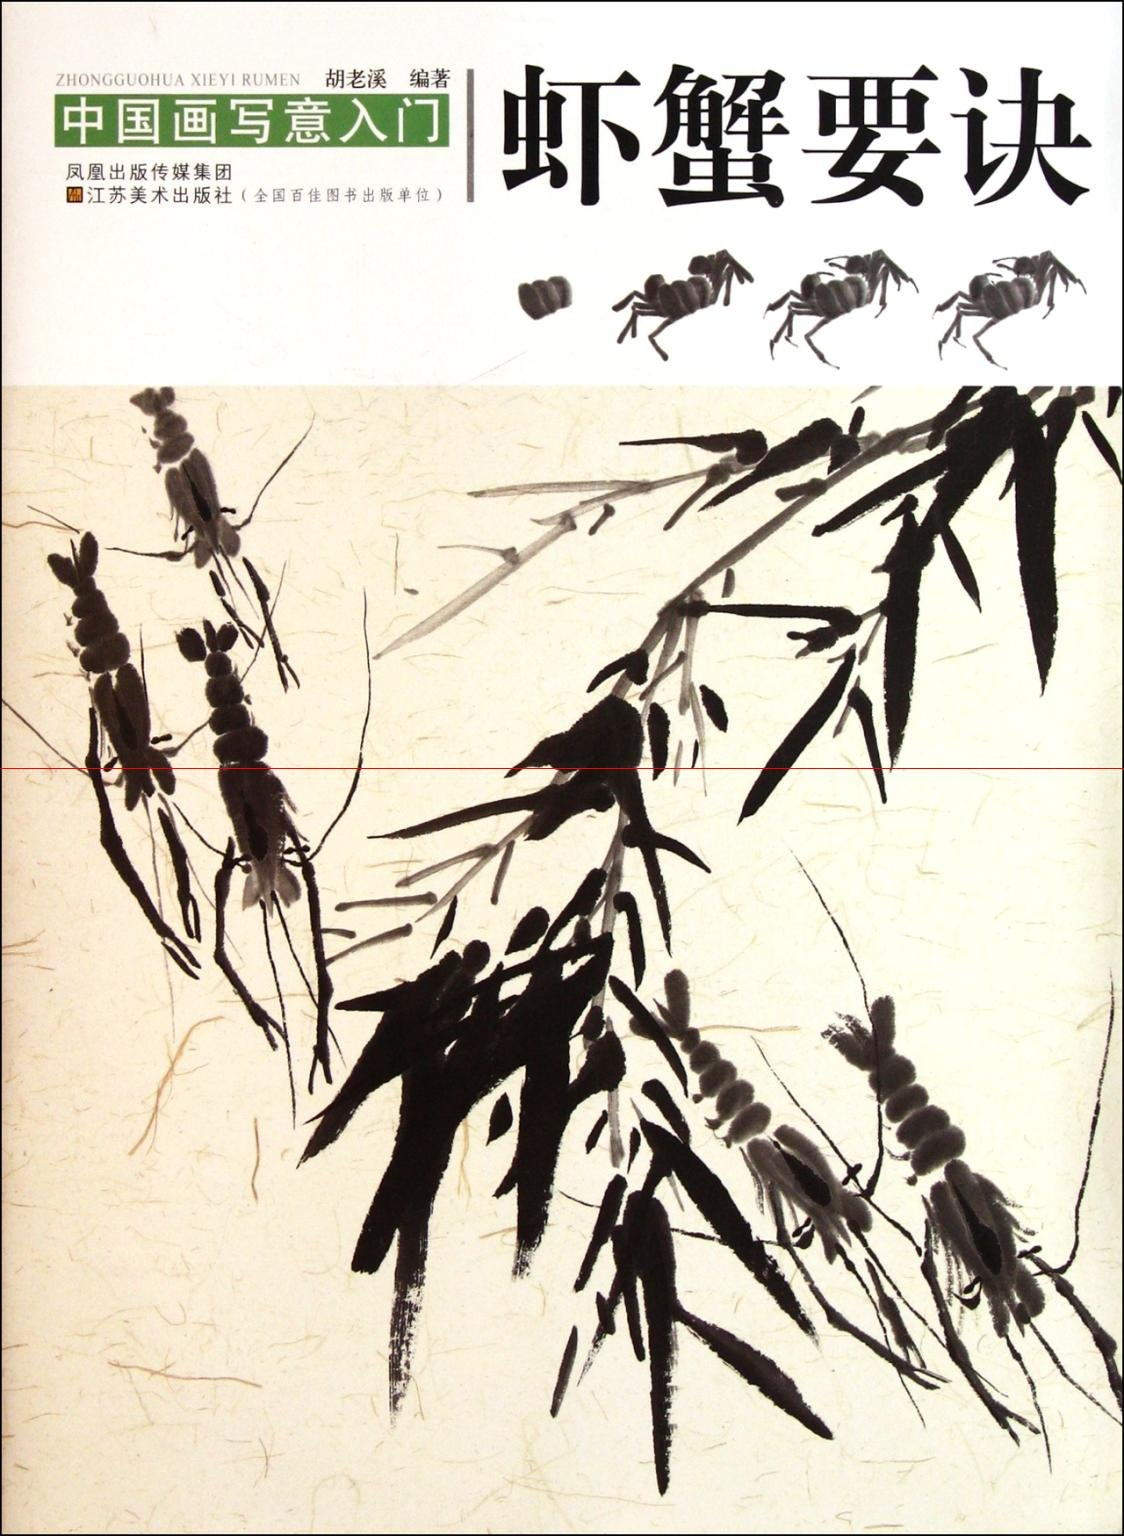 How to Paint Shrimps and Crabs-Introduction to freehand brushwork in traditional Chinese painting